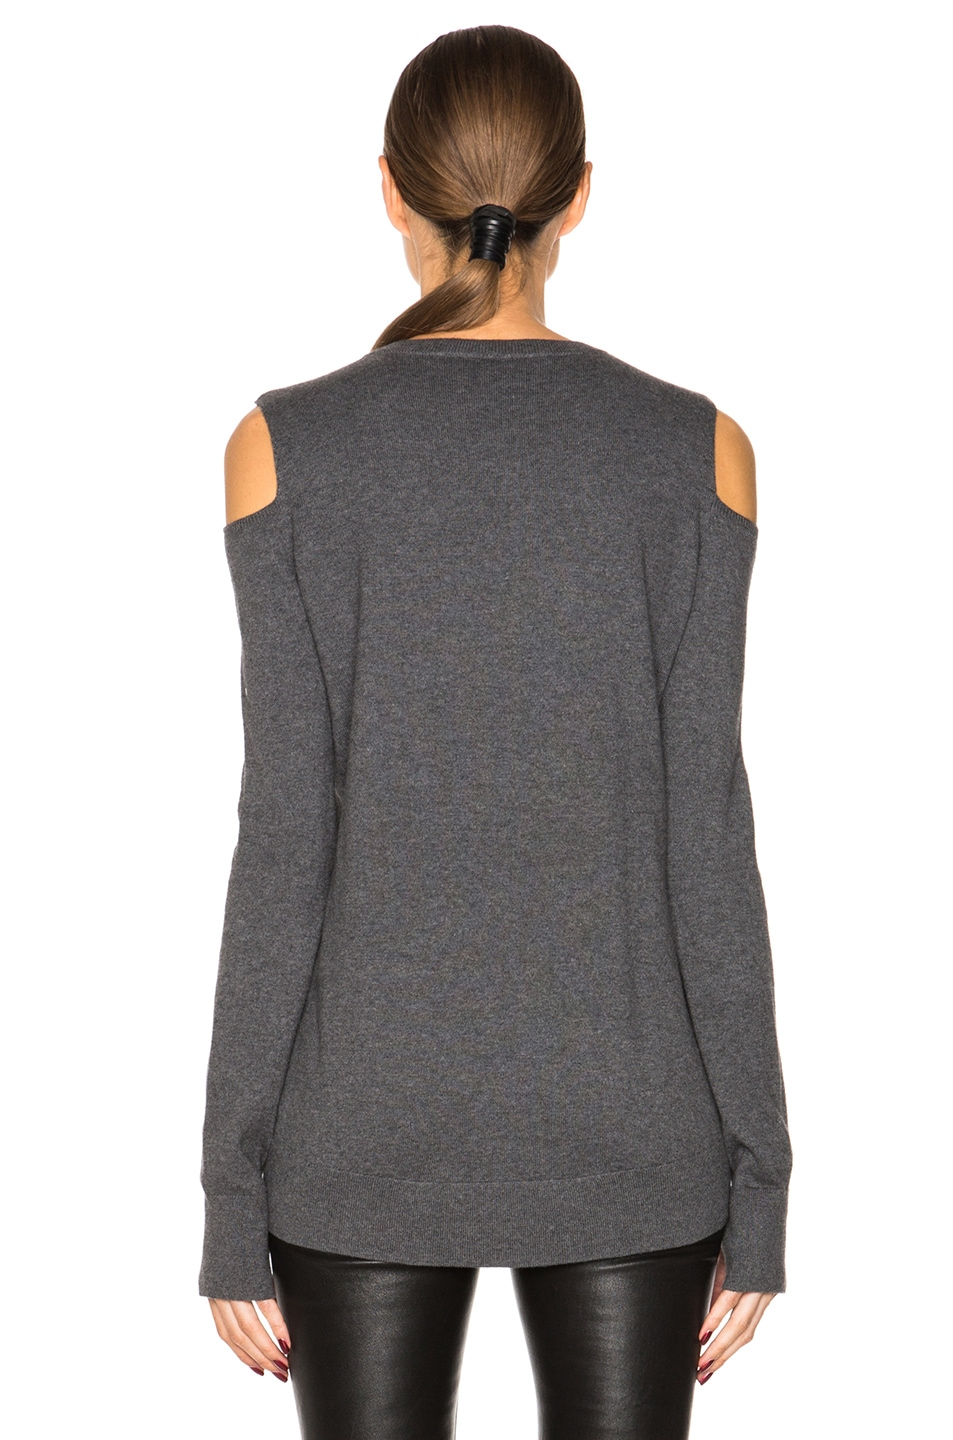 385ed822b02de2 Image 4 of Pam   Gela Cold Shoulder Sweater in Charcoal Heather